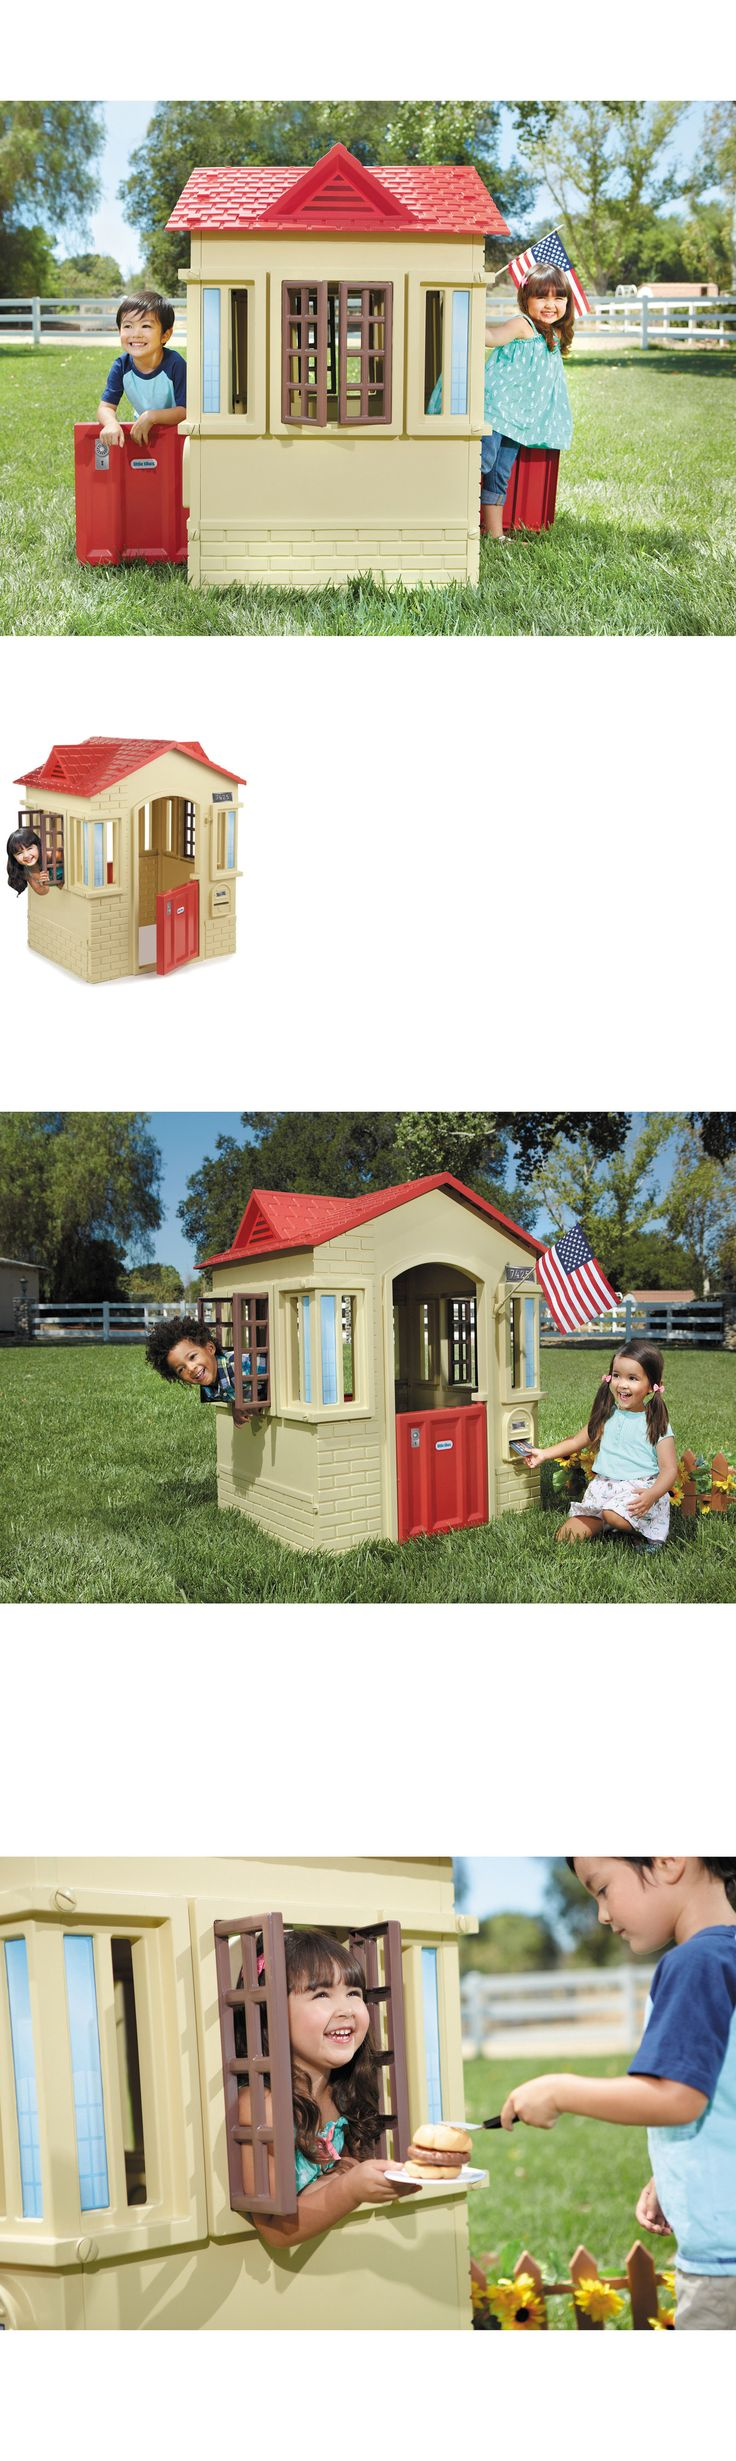 Permanent Playhouses 145995: Patio Playhouse Child Fun For Kids Outdoor Backyard Little Tikes Cape Cottage -> BUY IT NOW ONLY: $468.15 on eBay!